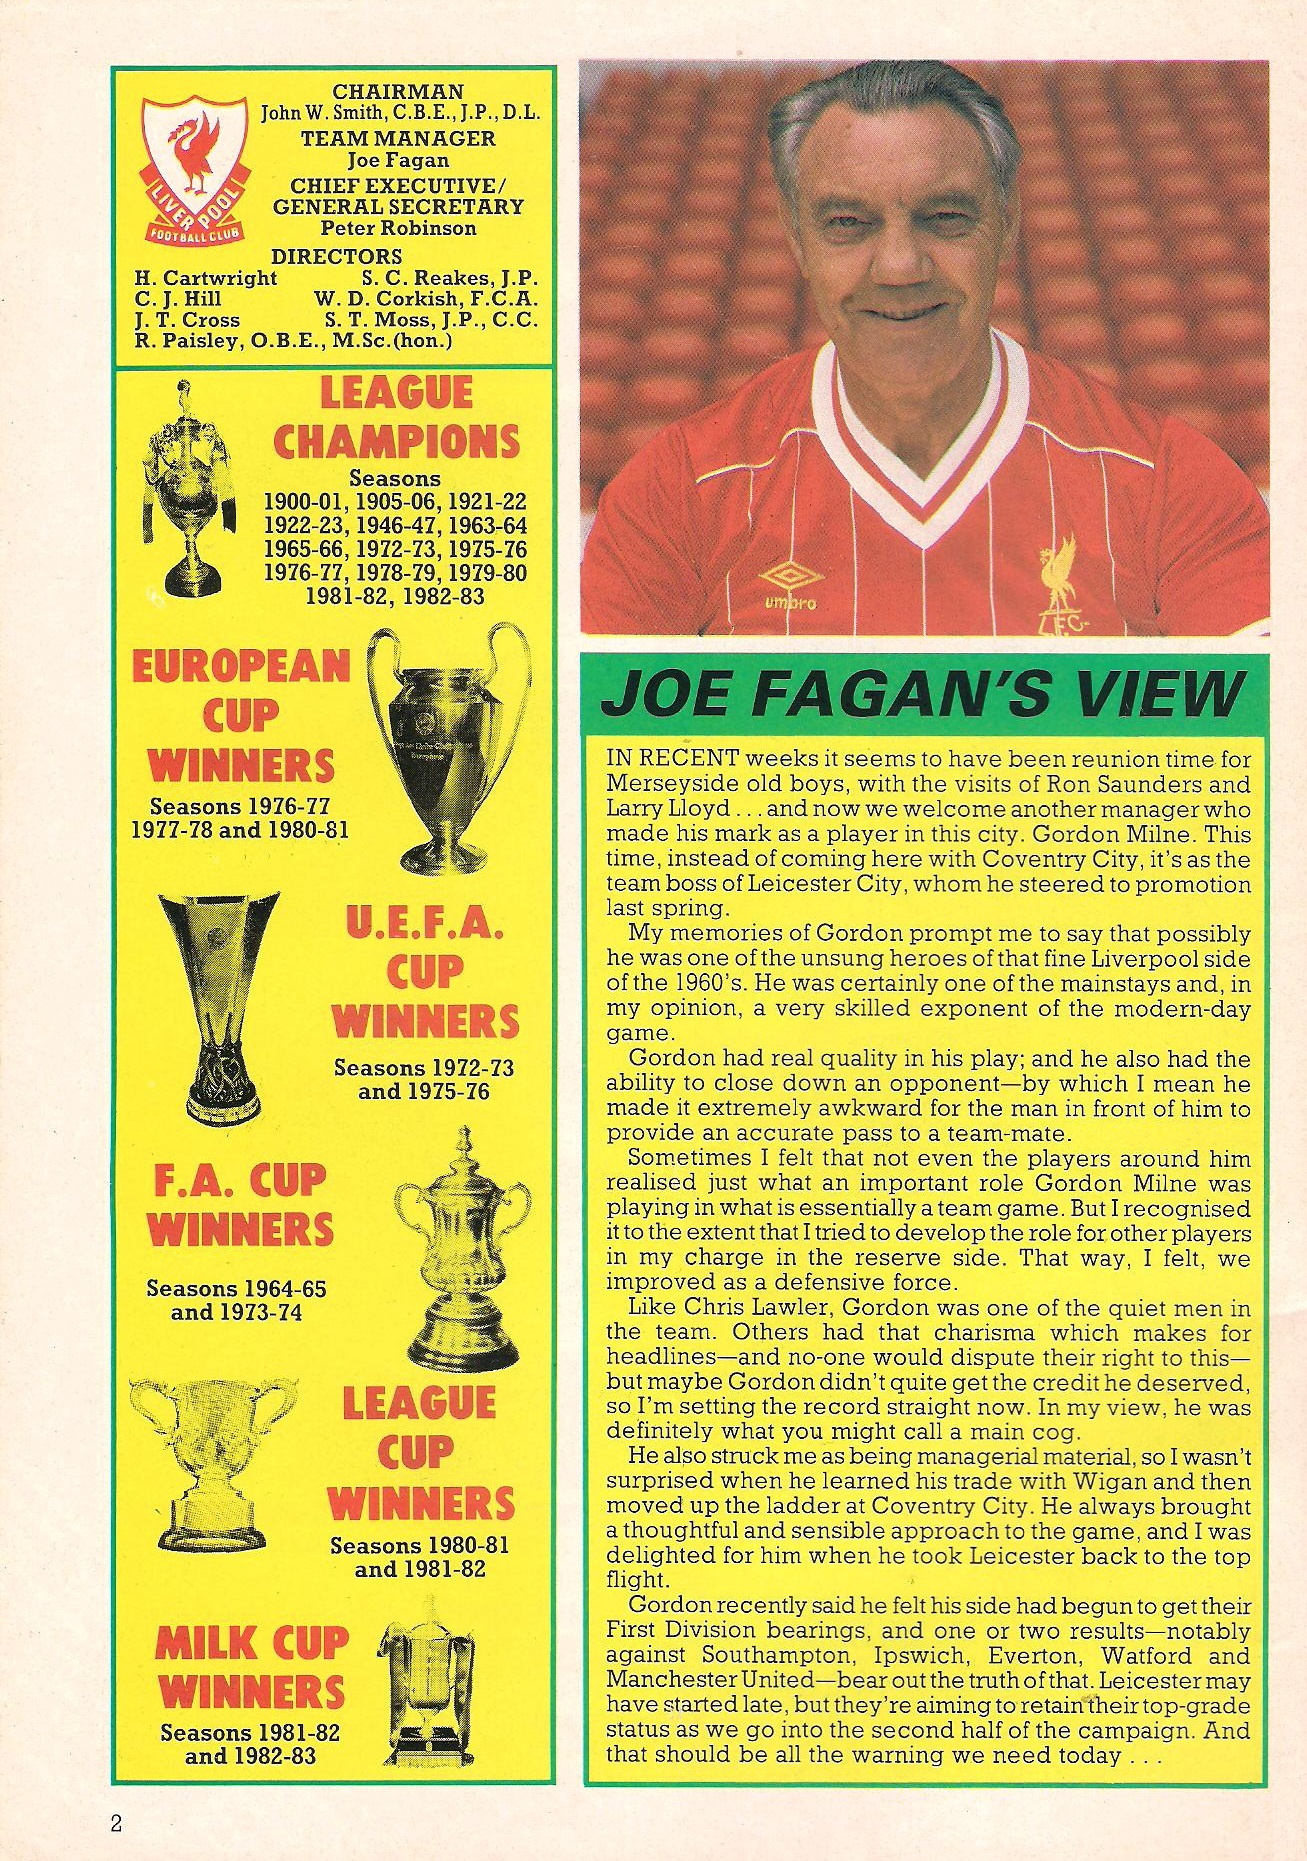 Joe Fagan on Gordon Milne in 1983